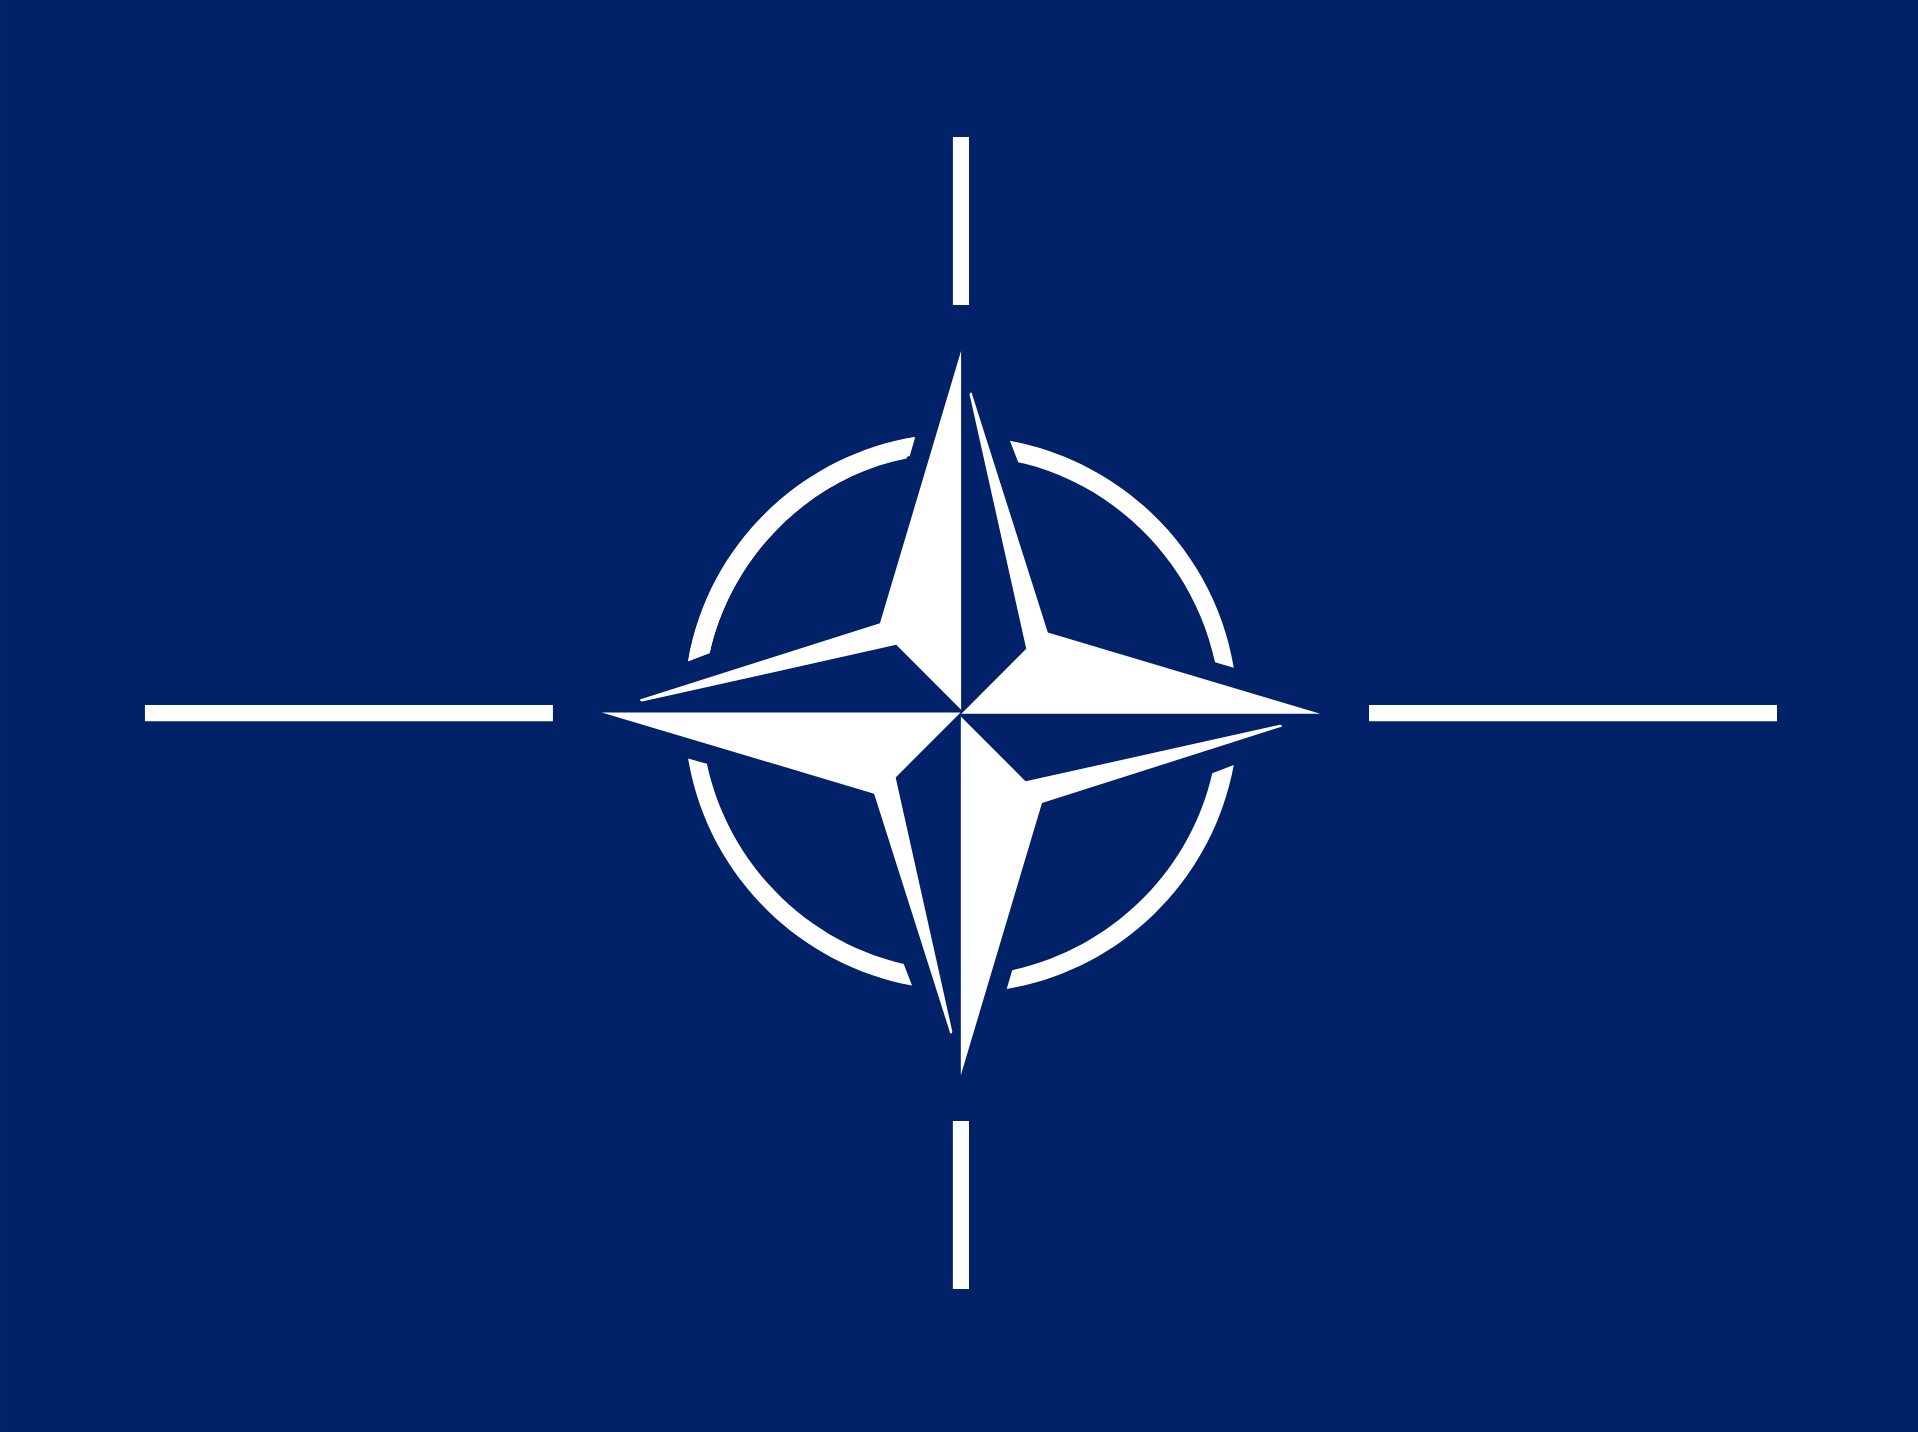 Flag of NATO. Image credit: Wikimedia Commons